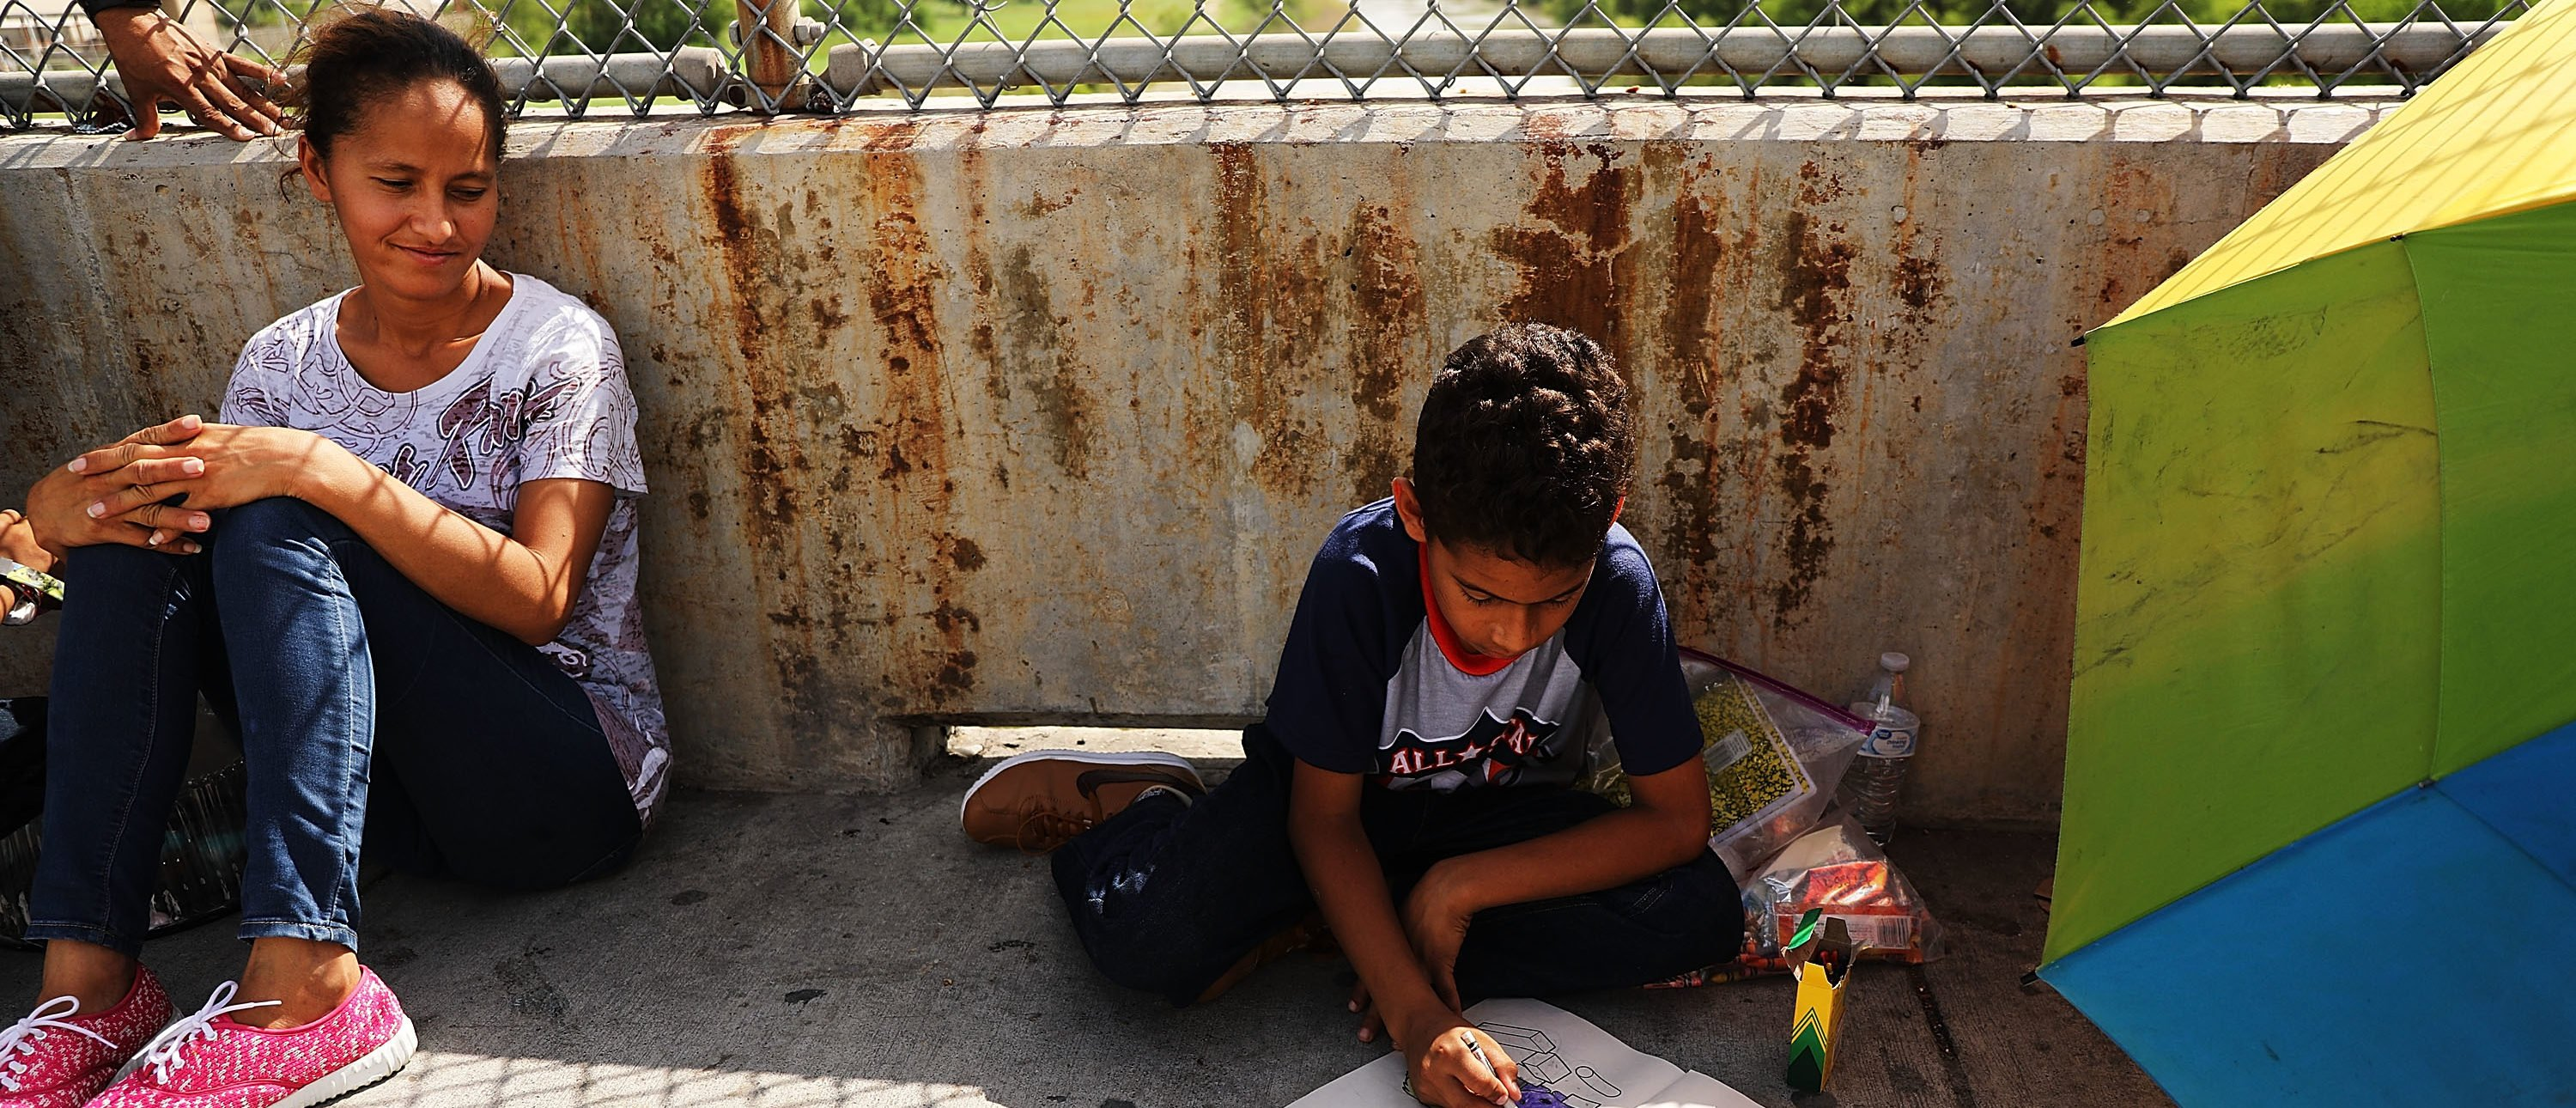 BROWNSVILLE, TX - JUNE 25: A Honduran child works in a coloring book while waiting with his family along the border bridge after being denied entry into the U.S. from Mexico on June 25, 2018 in Brownsville, Texas. Immigration has once again been put in the spotlight as Democrats and Republicans spar over the detention of children and families seeking asylum at the border. Before President Donald Trump signed an executive order last week that halts the practice of separating families who are seeking asylum, more than 2,300 immigrant children had been separated from their parents in the zero-tolerance policy for border crossers. (Photo by Spencer Platt/Getty Images)